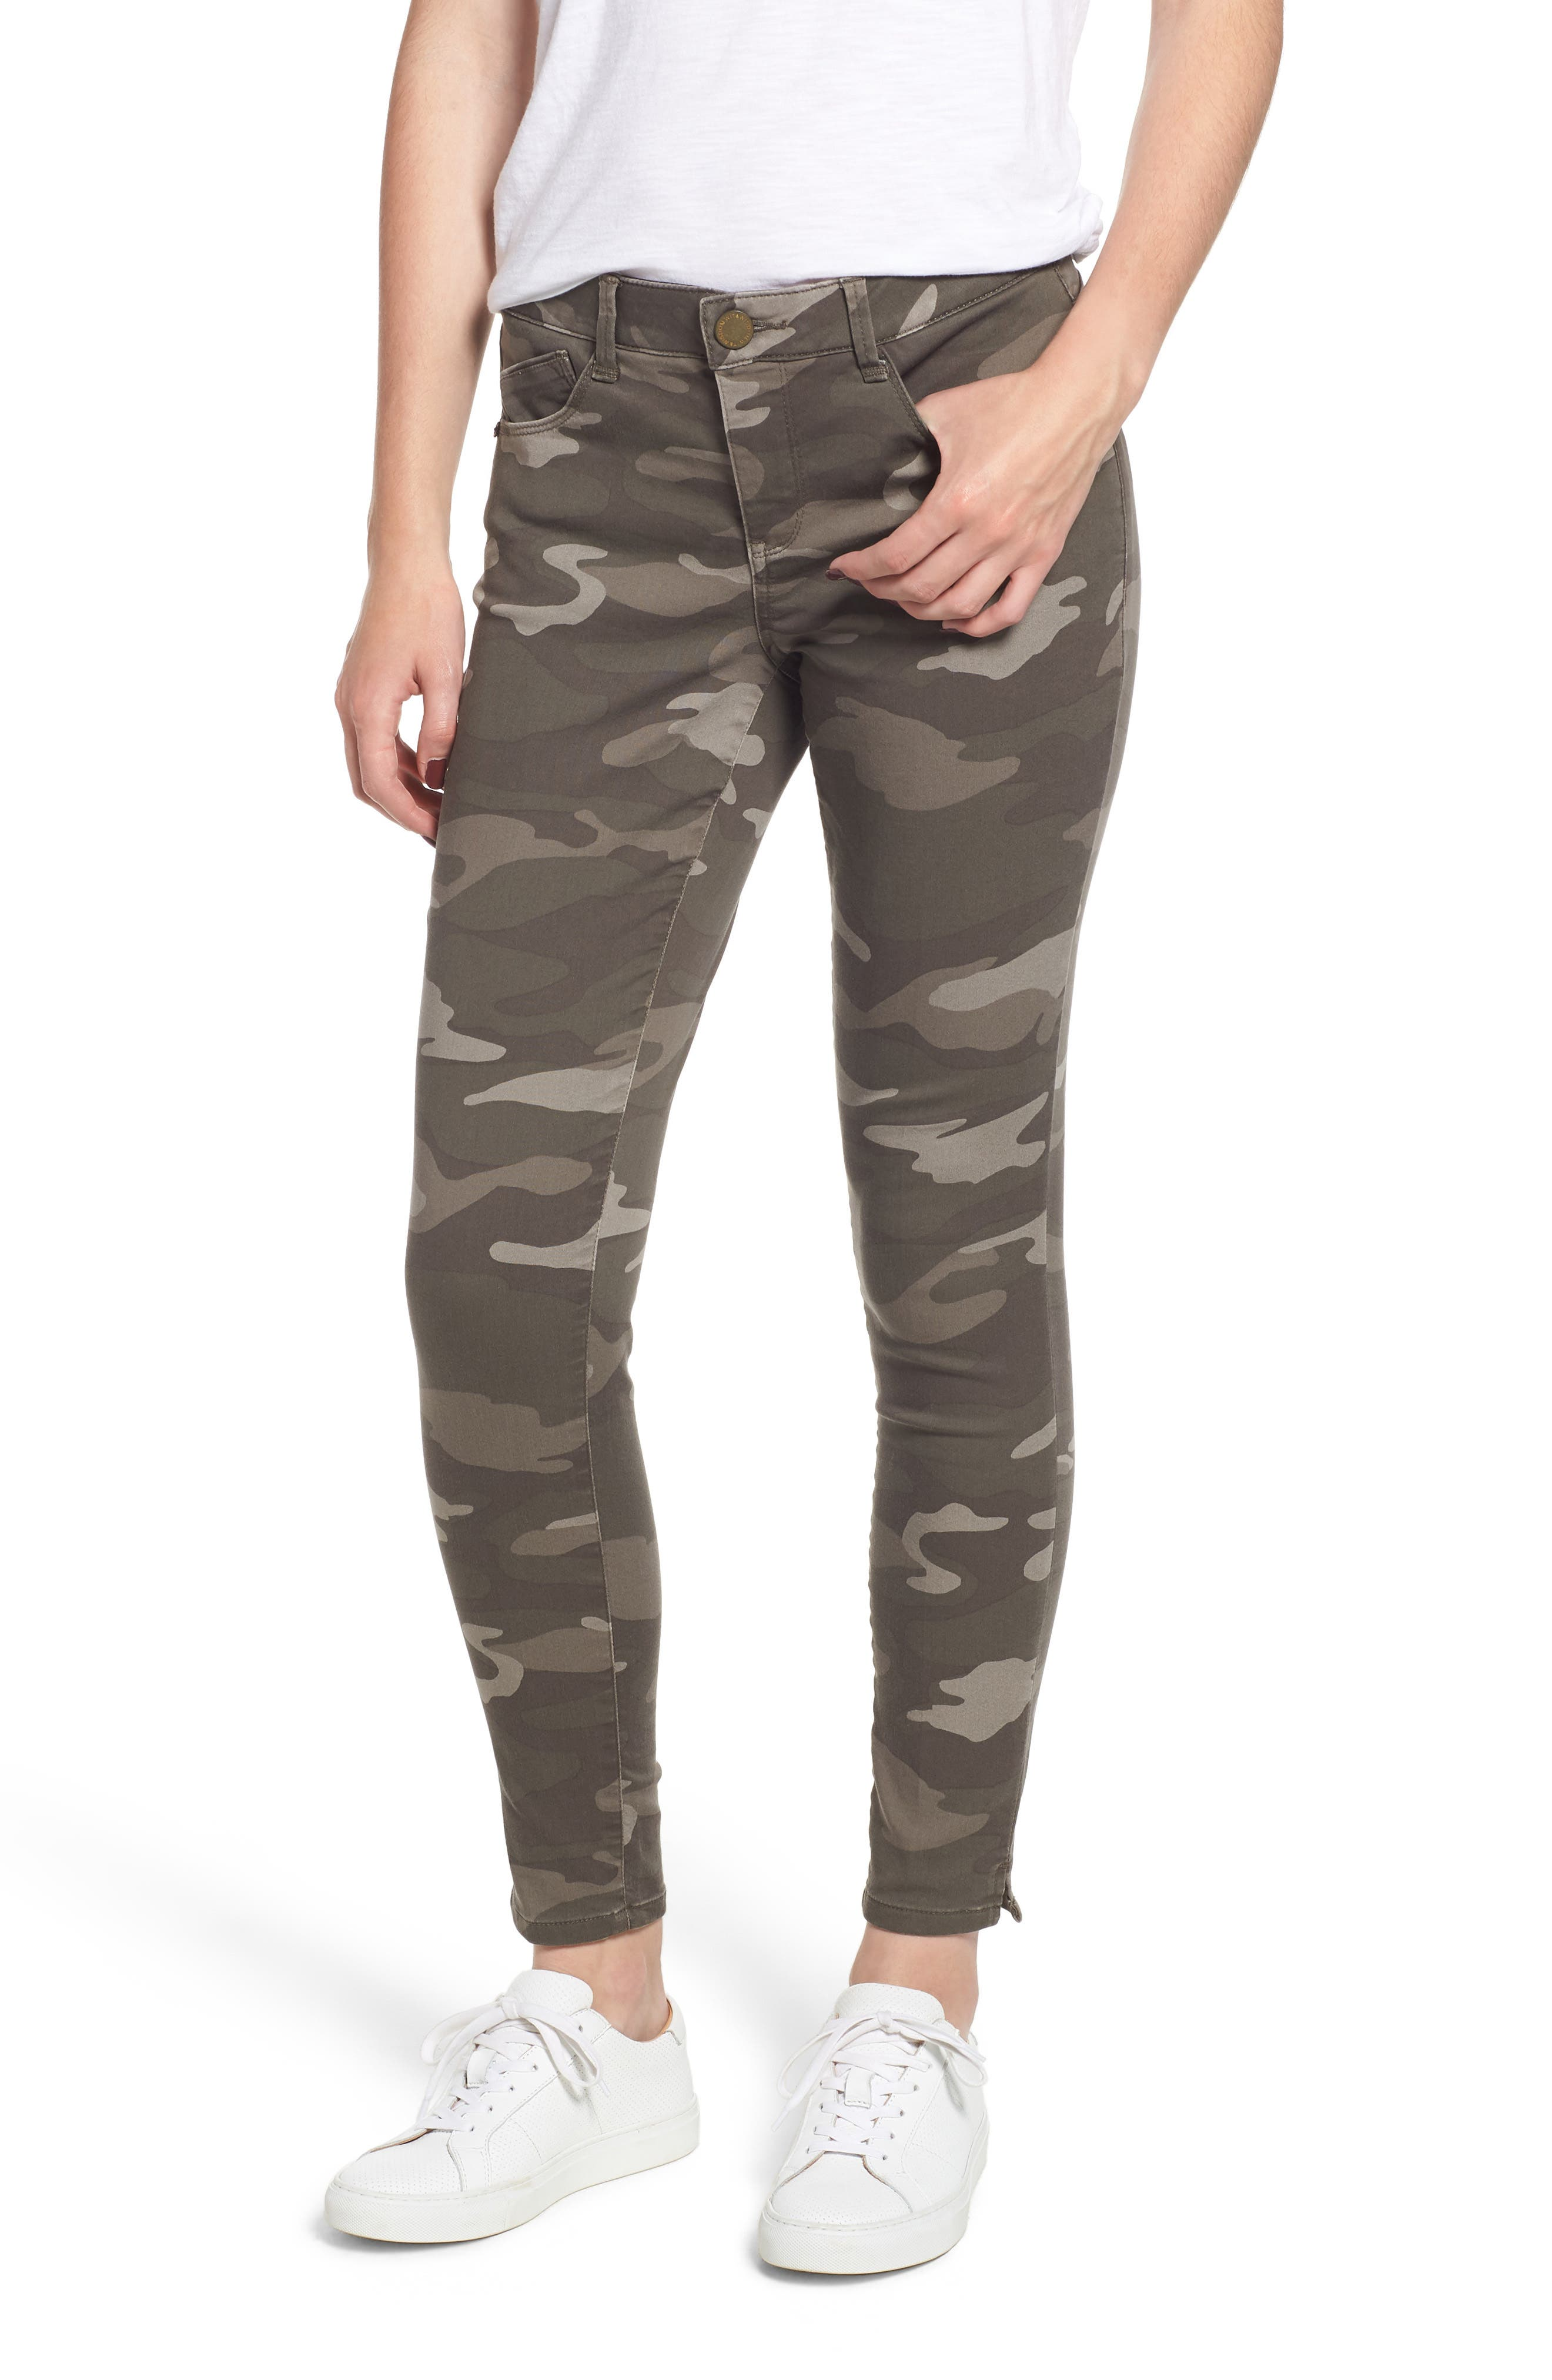 Ab-solution Ankle Skinny Jeans,                         Main,                         color, MUSHROOM